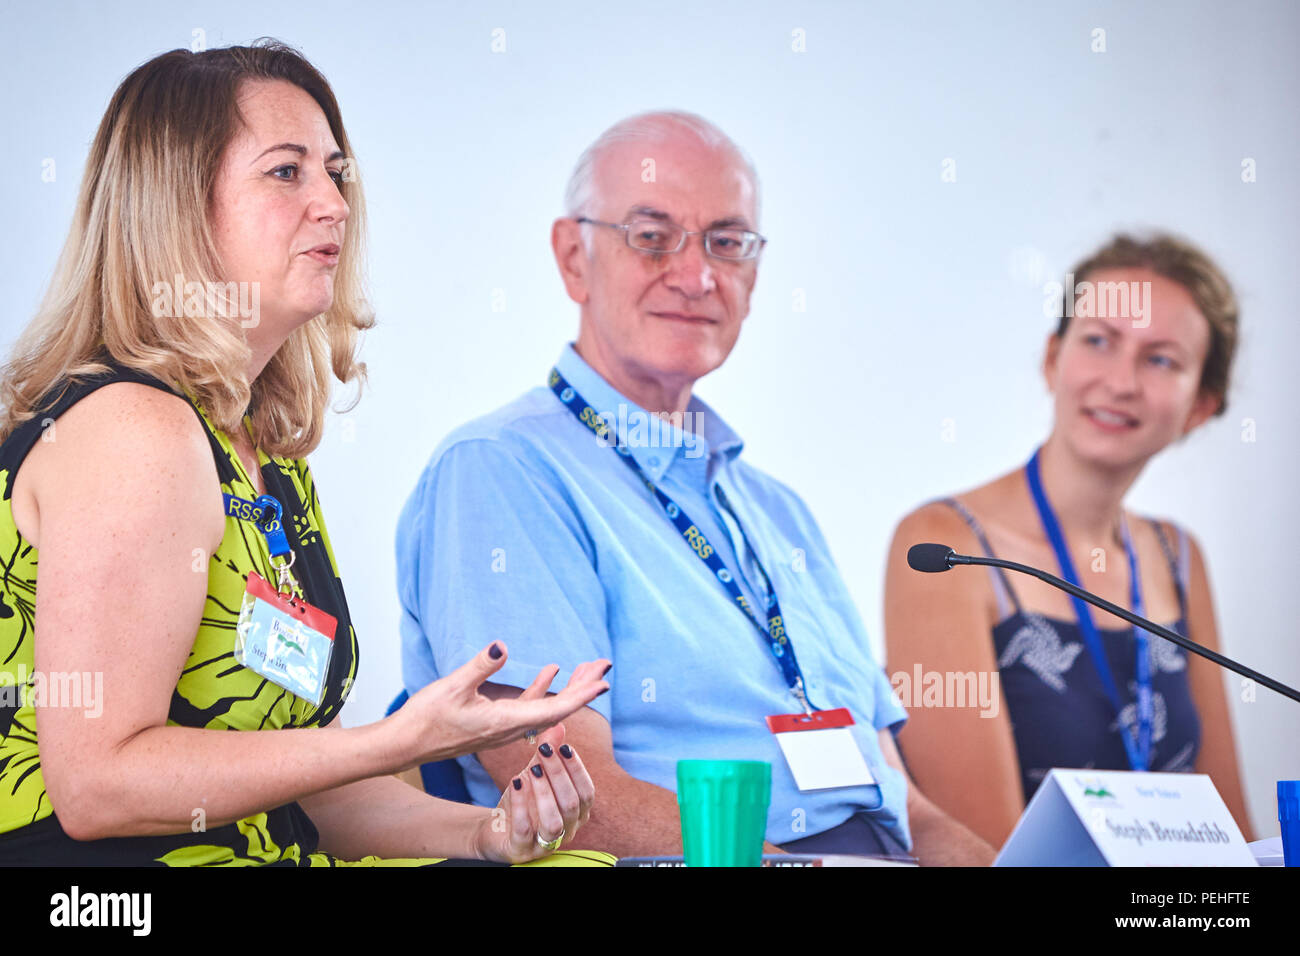 Stephanie Marland (L) writing as Steph Broadribb and Harriet Cummings (R) on the New Voices panel at BeaconLit book festival in Ivinghoe with Dave Sivers (C) - Stock Image